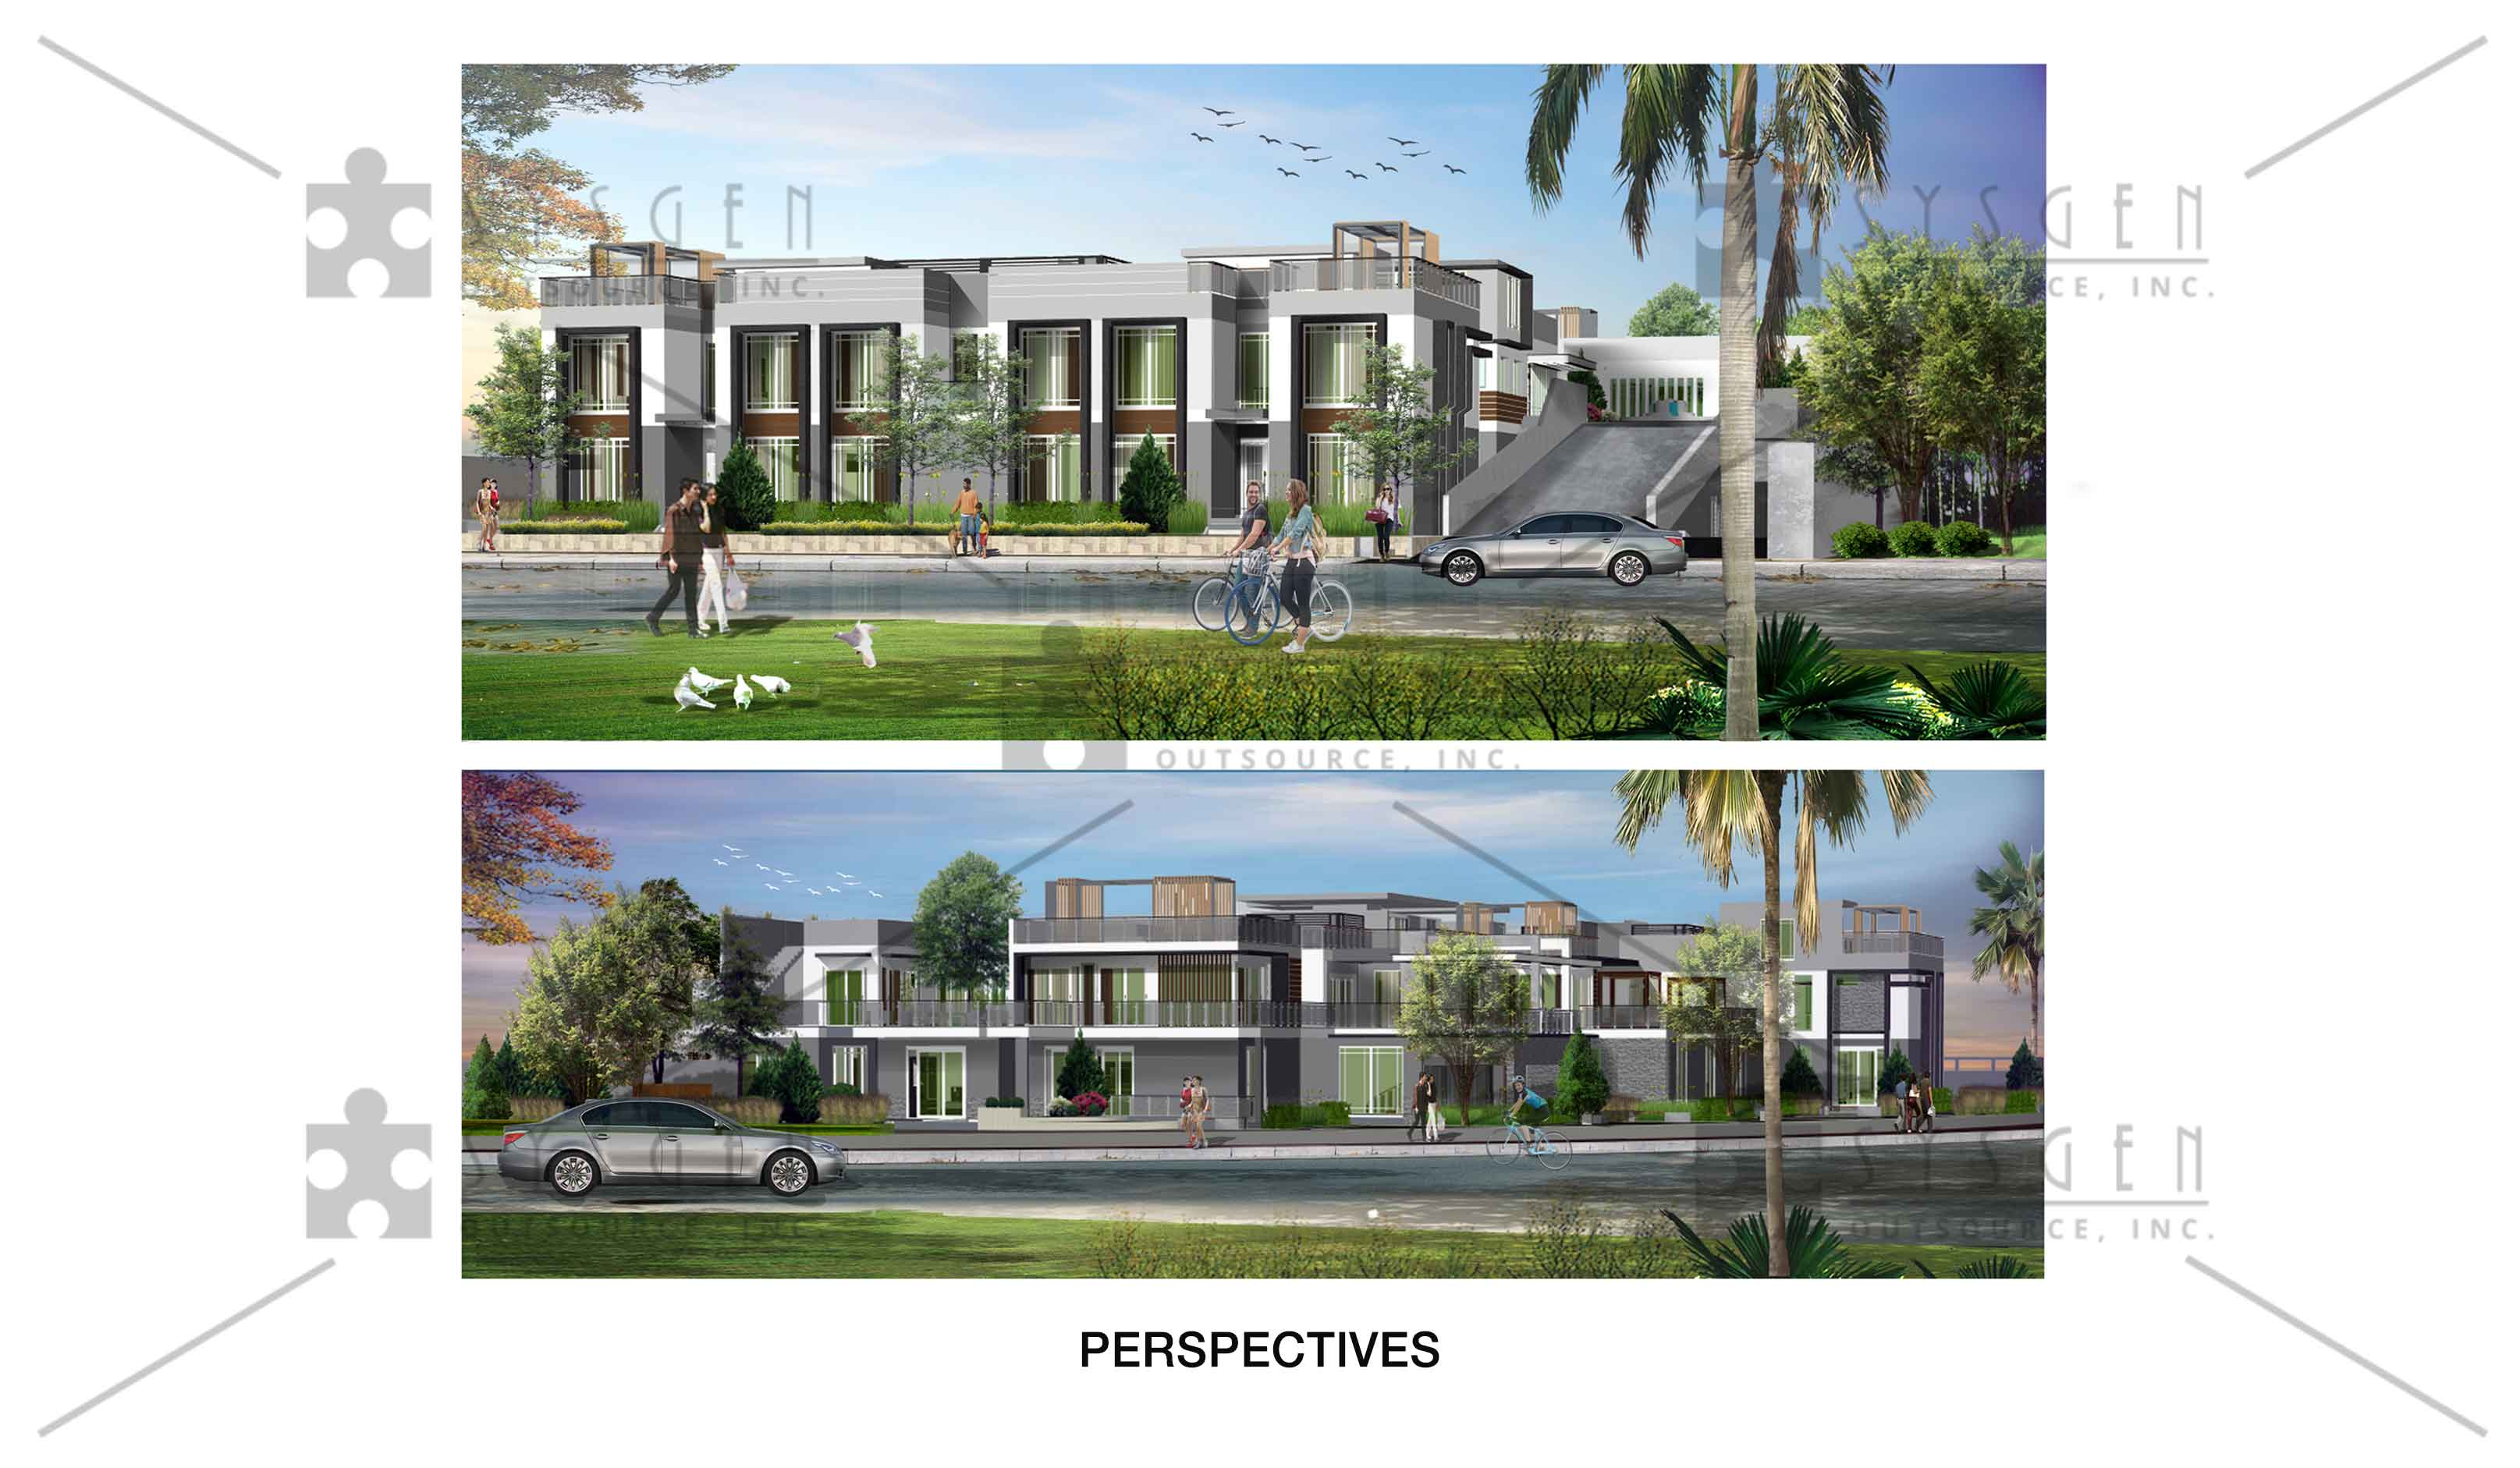 sysgen-outsource-cad-outsourcing-services-sketch-up-resi_villa-jj1